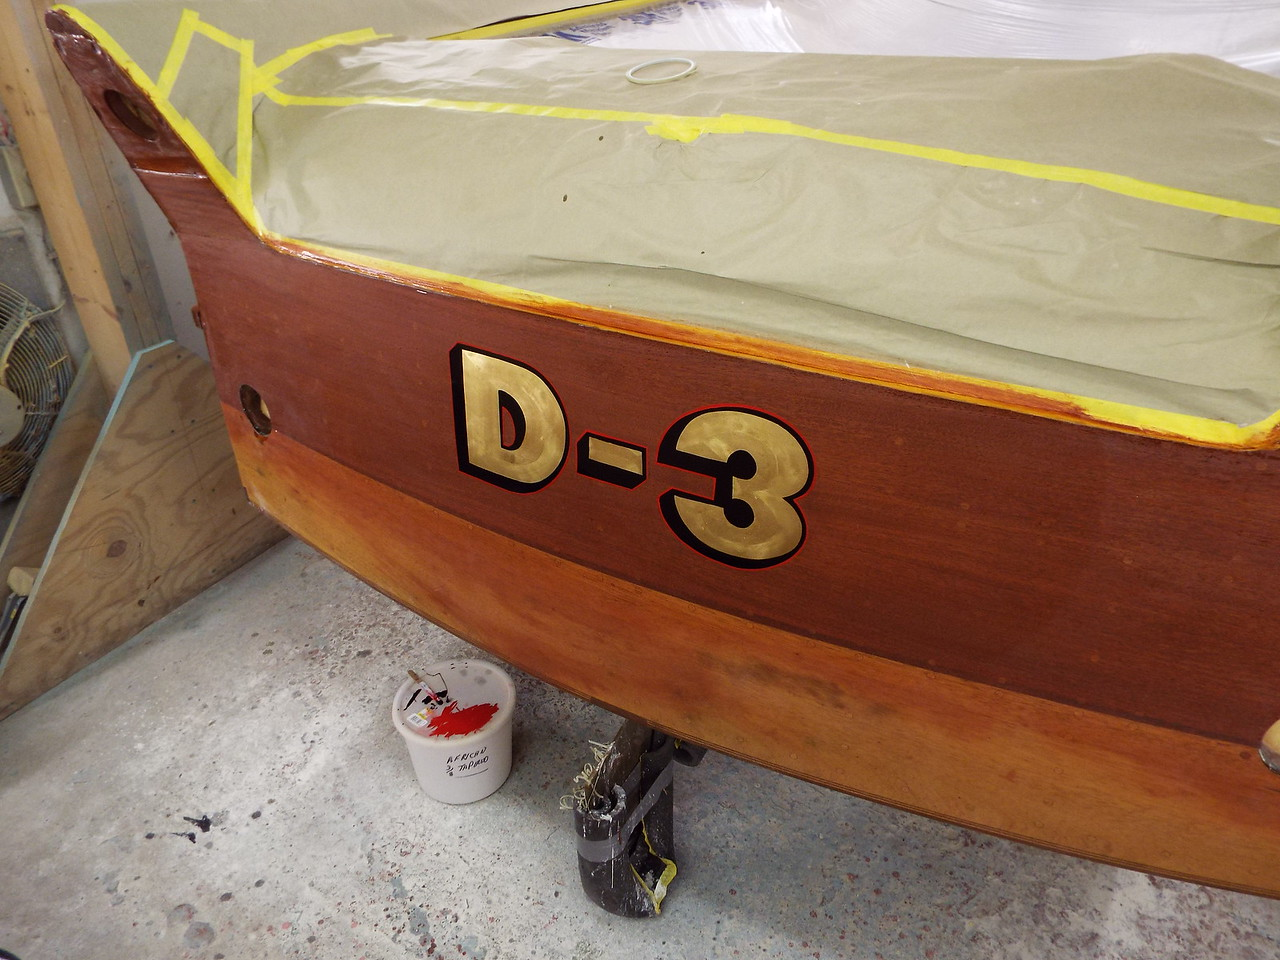 Transom lettering complete.